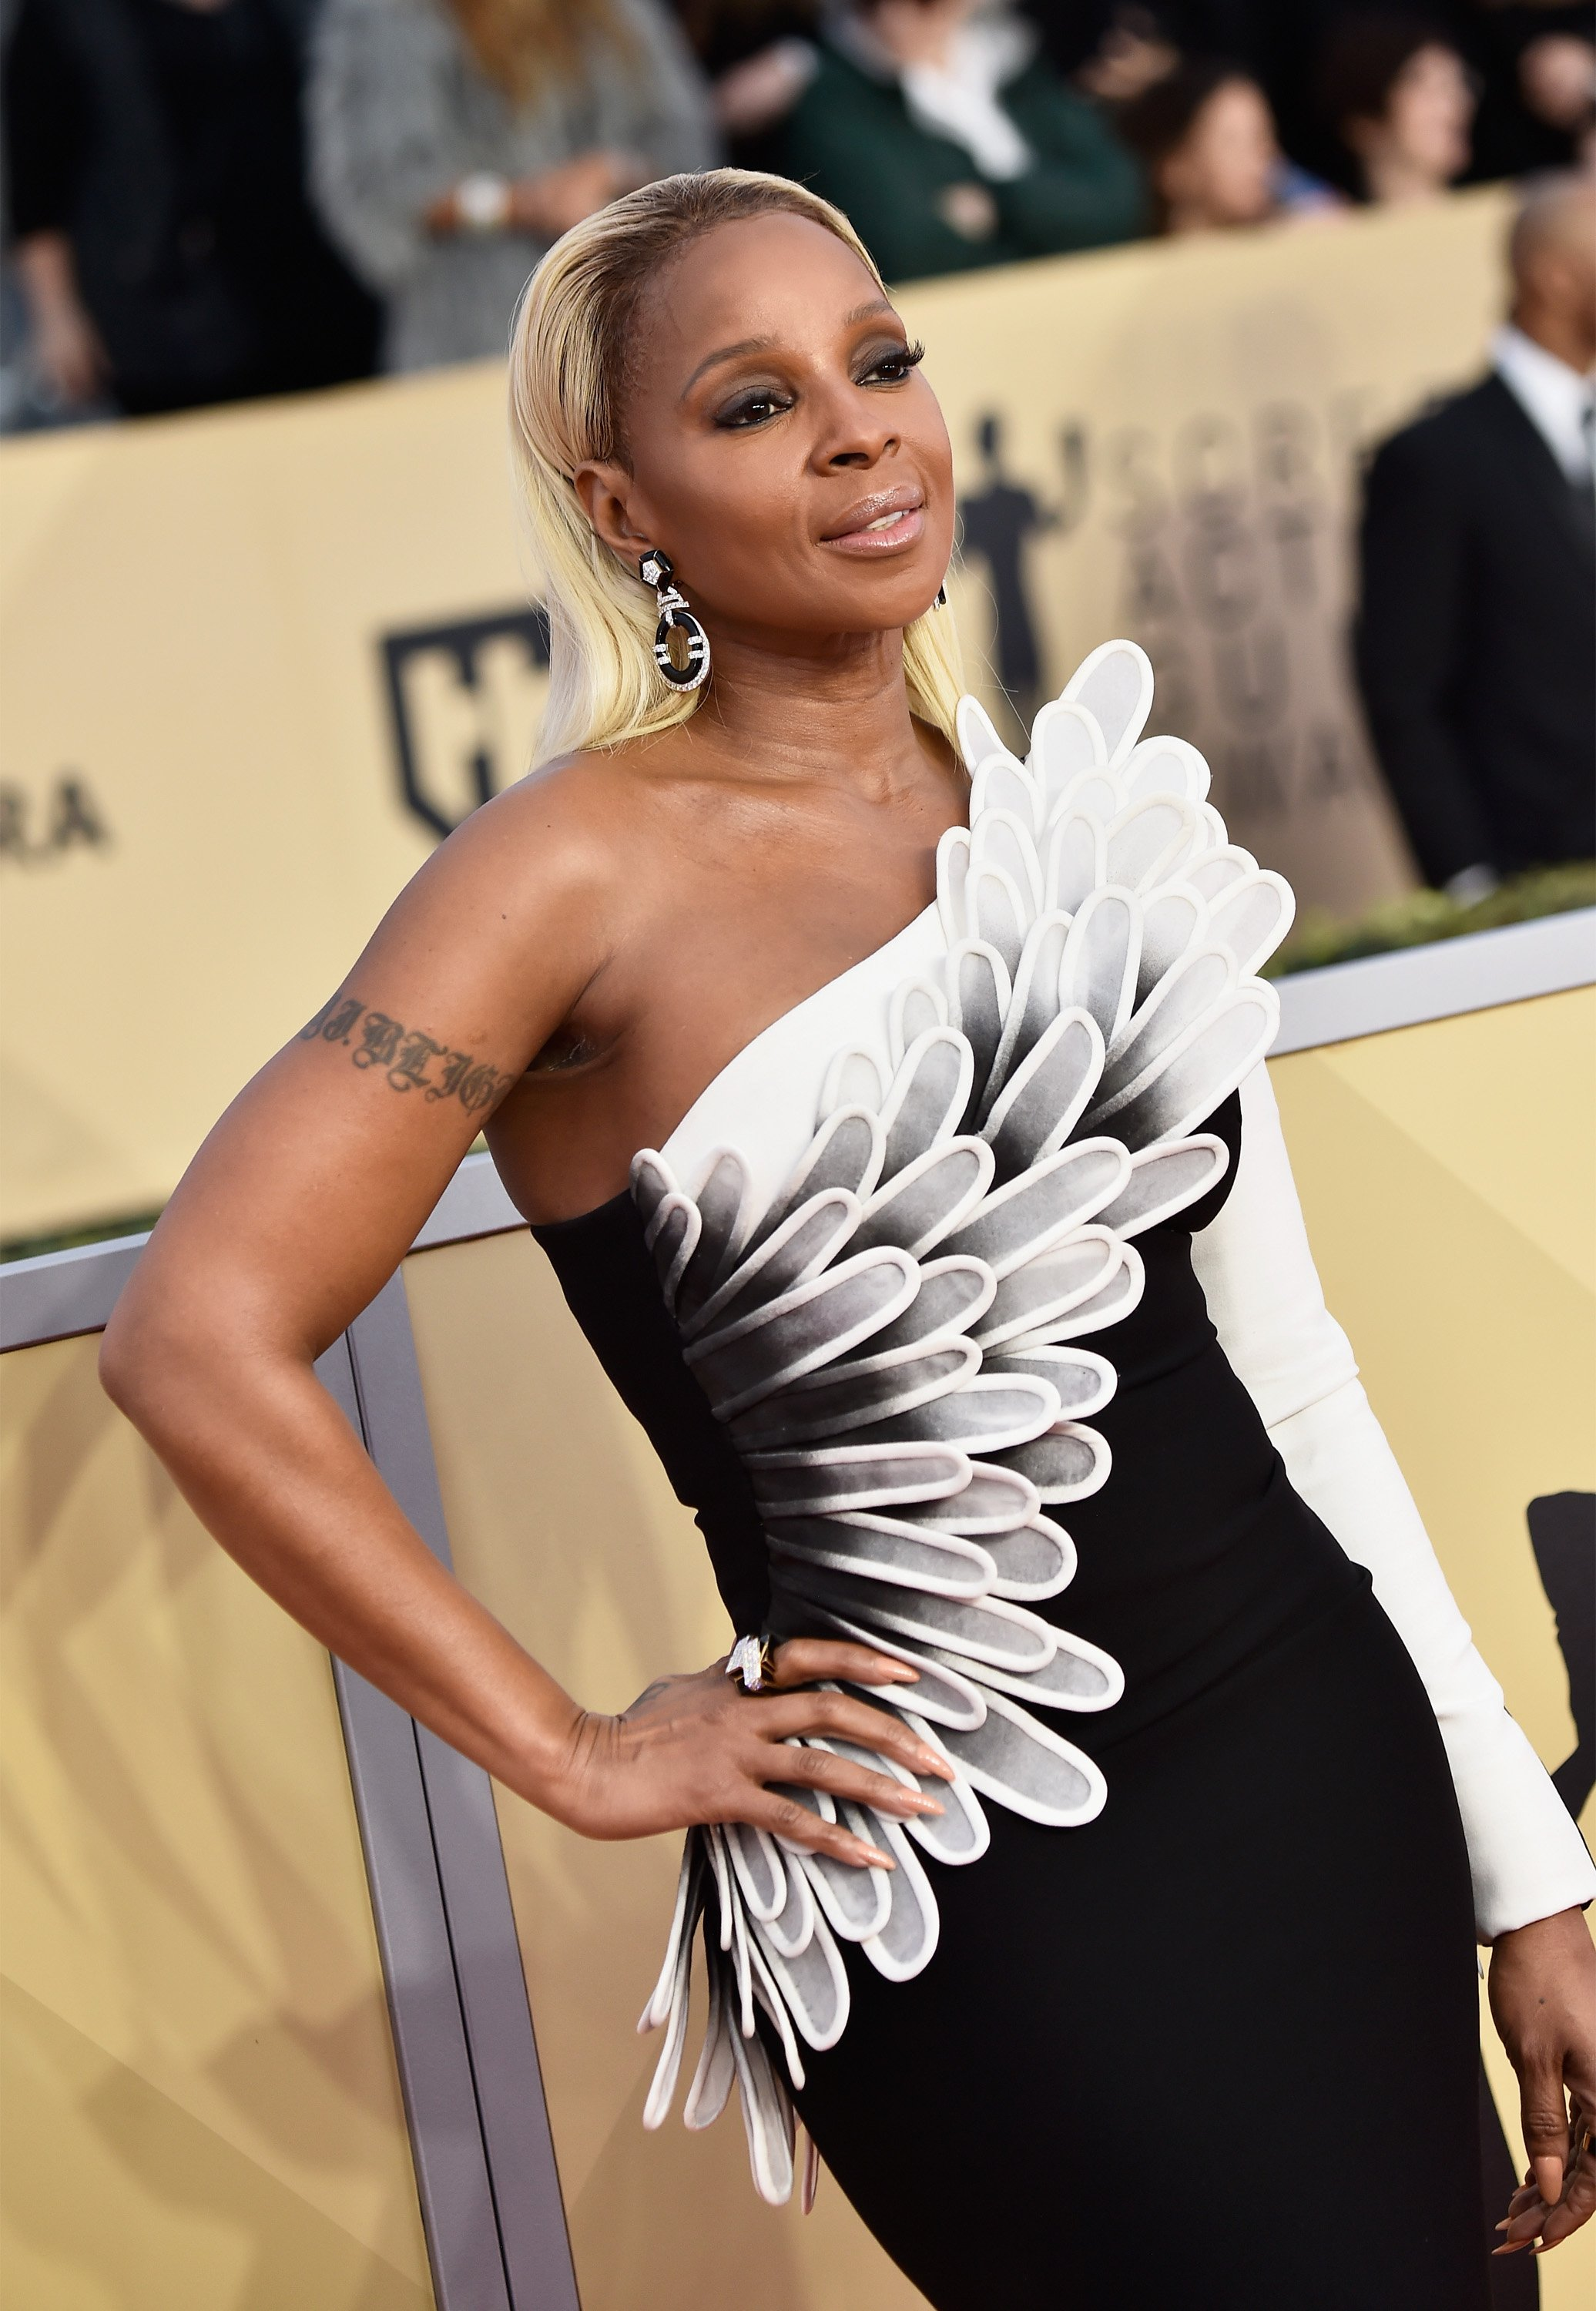 Mary J. Blige at the 24th Annual Screen Actors Guild Awards at The Shrine Auditorium on January 21, 2018. | Photo: Getty Images